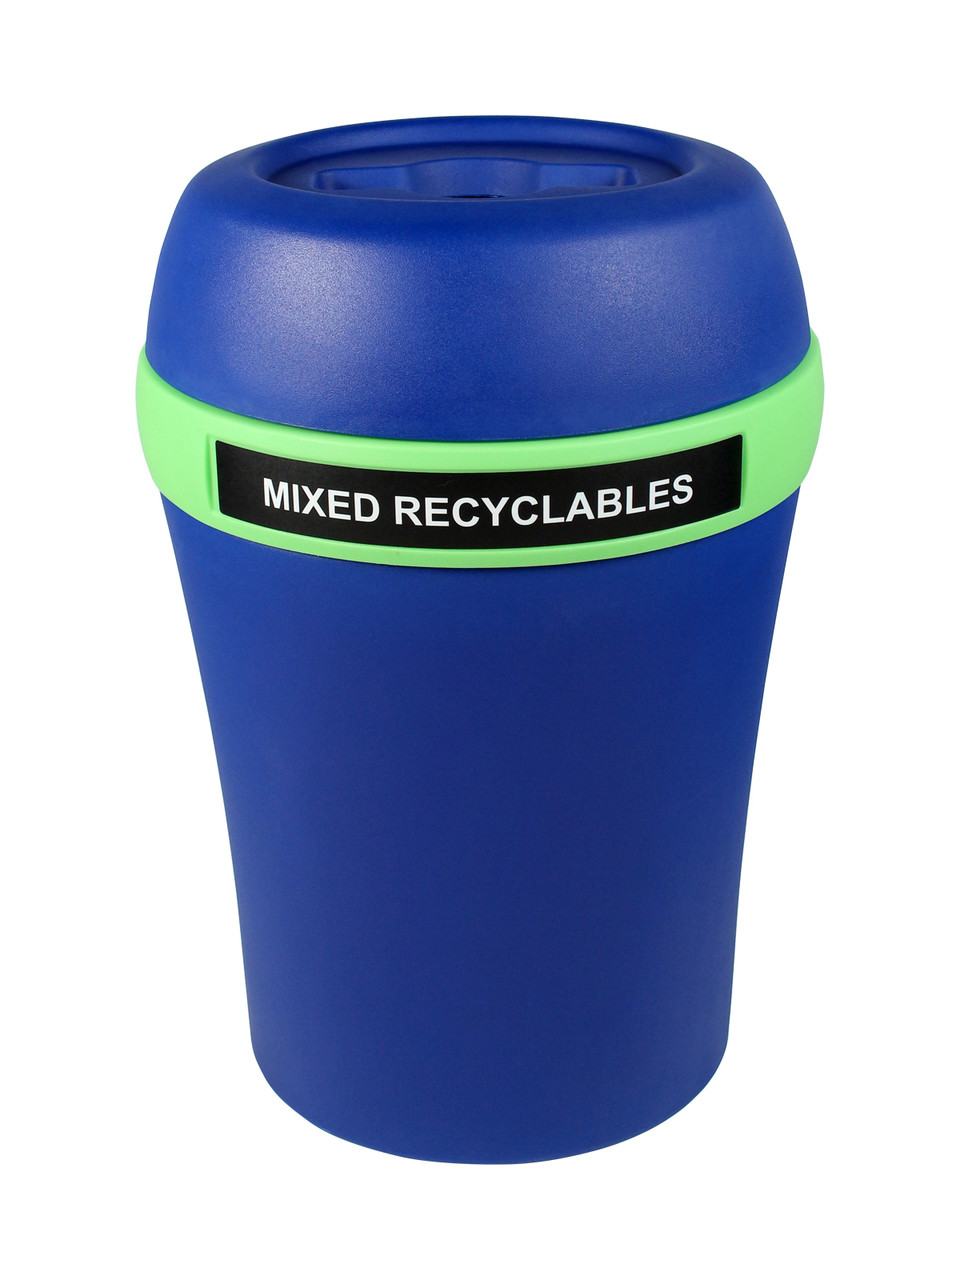 Mixed Recyclables-Blue/Green-Mixed